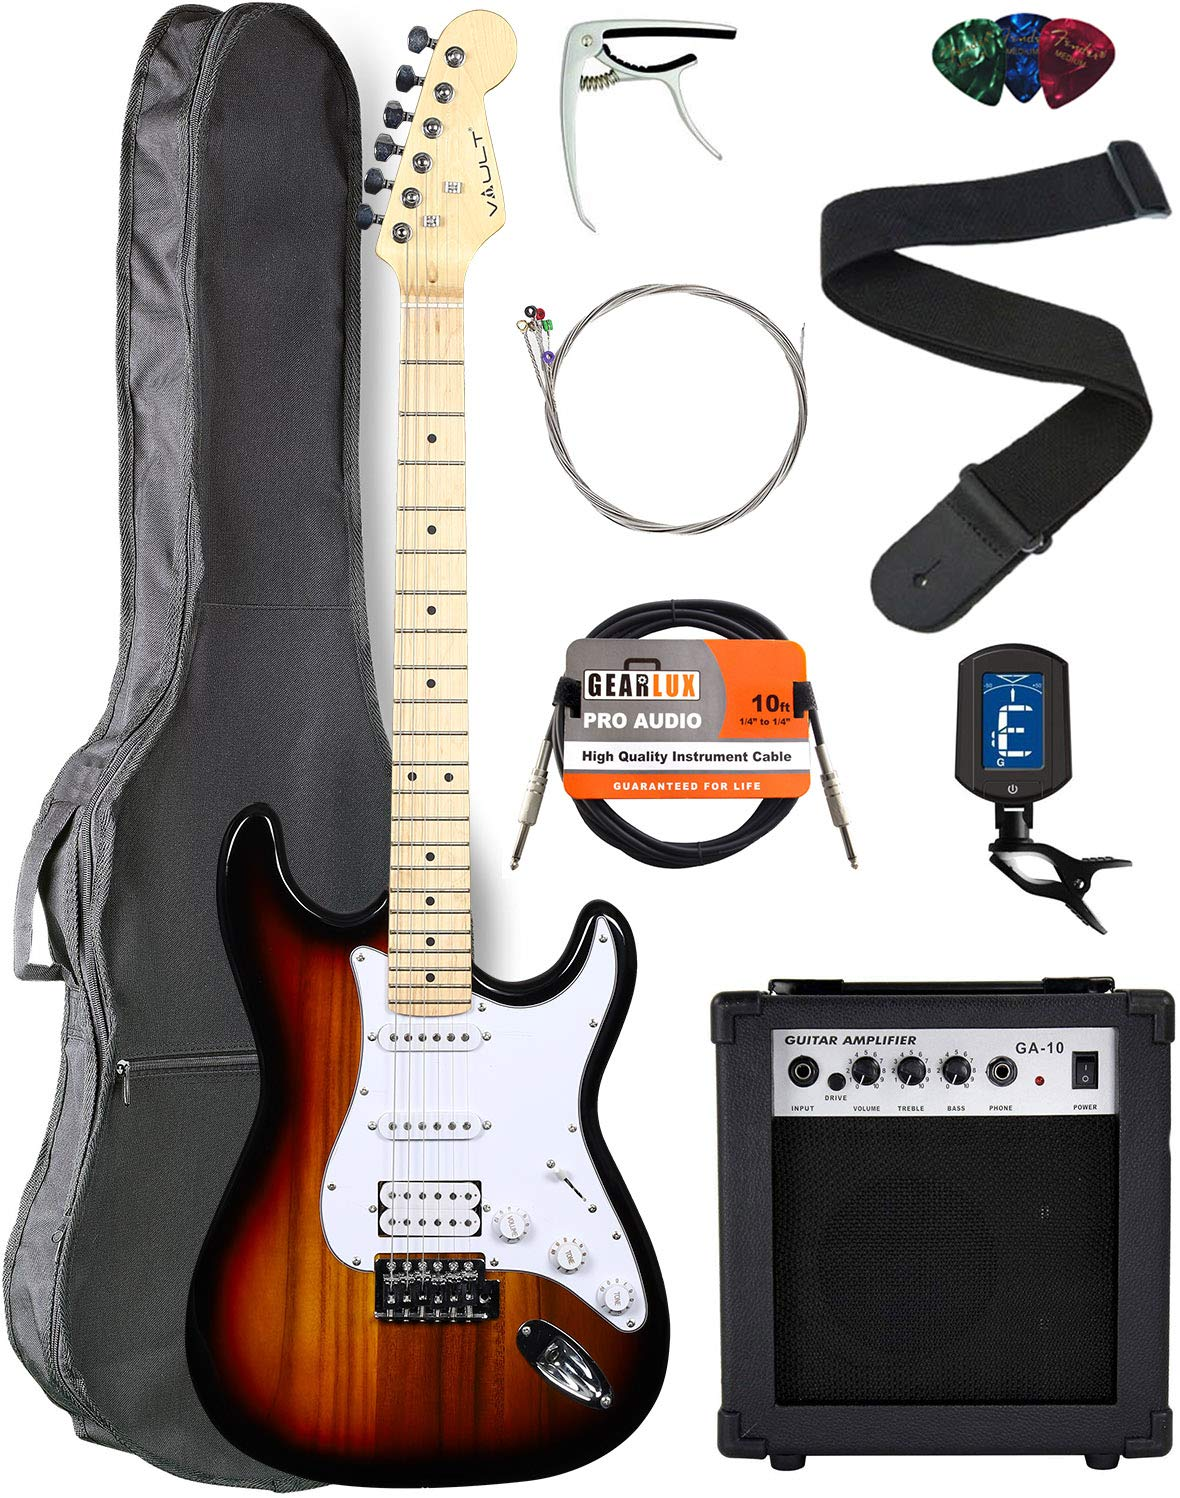 Contents of the Vault ST1-E Sunburst Electric Guitar Bundle